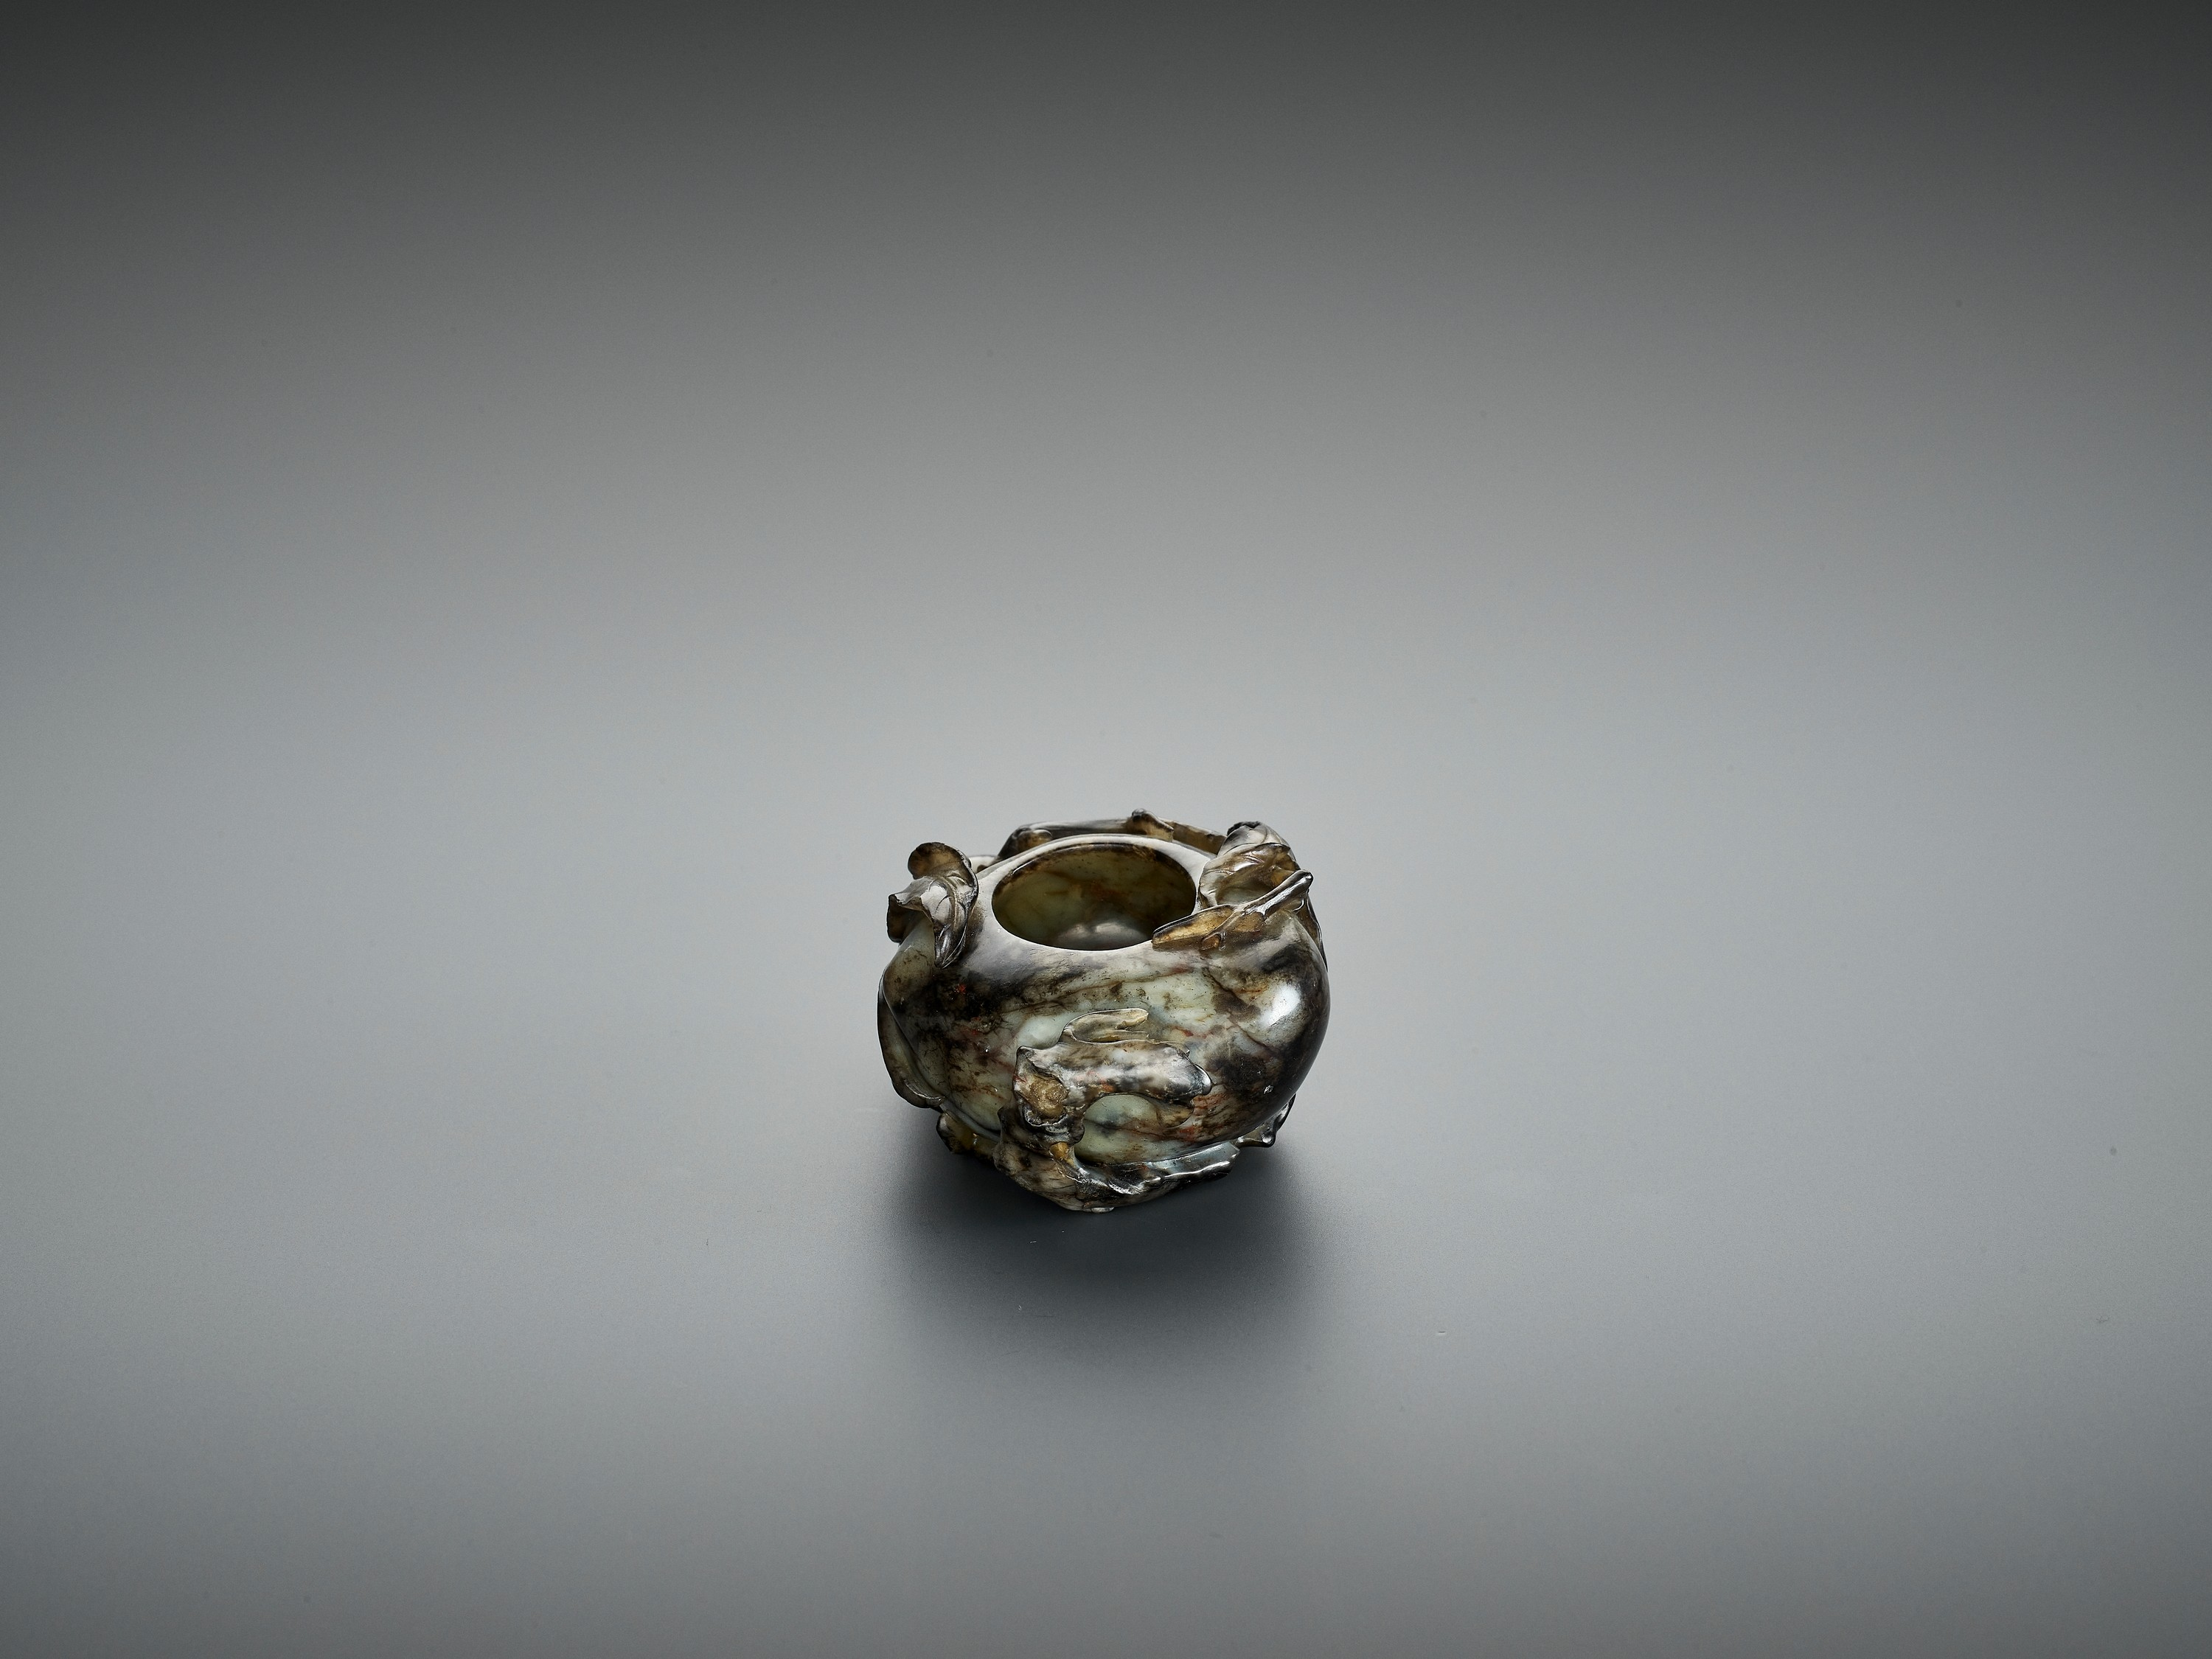 A 'PEACH' BRUSH WASHER, QING DYNASTY - Image 8 of 12